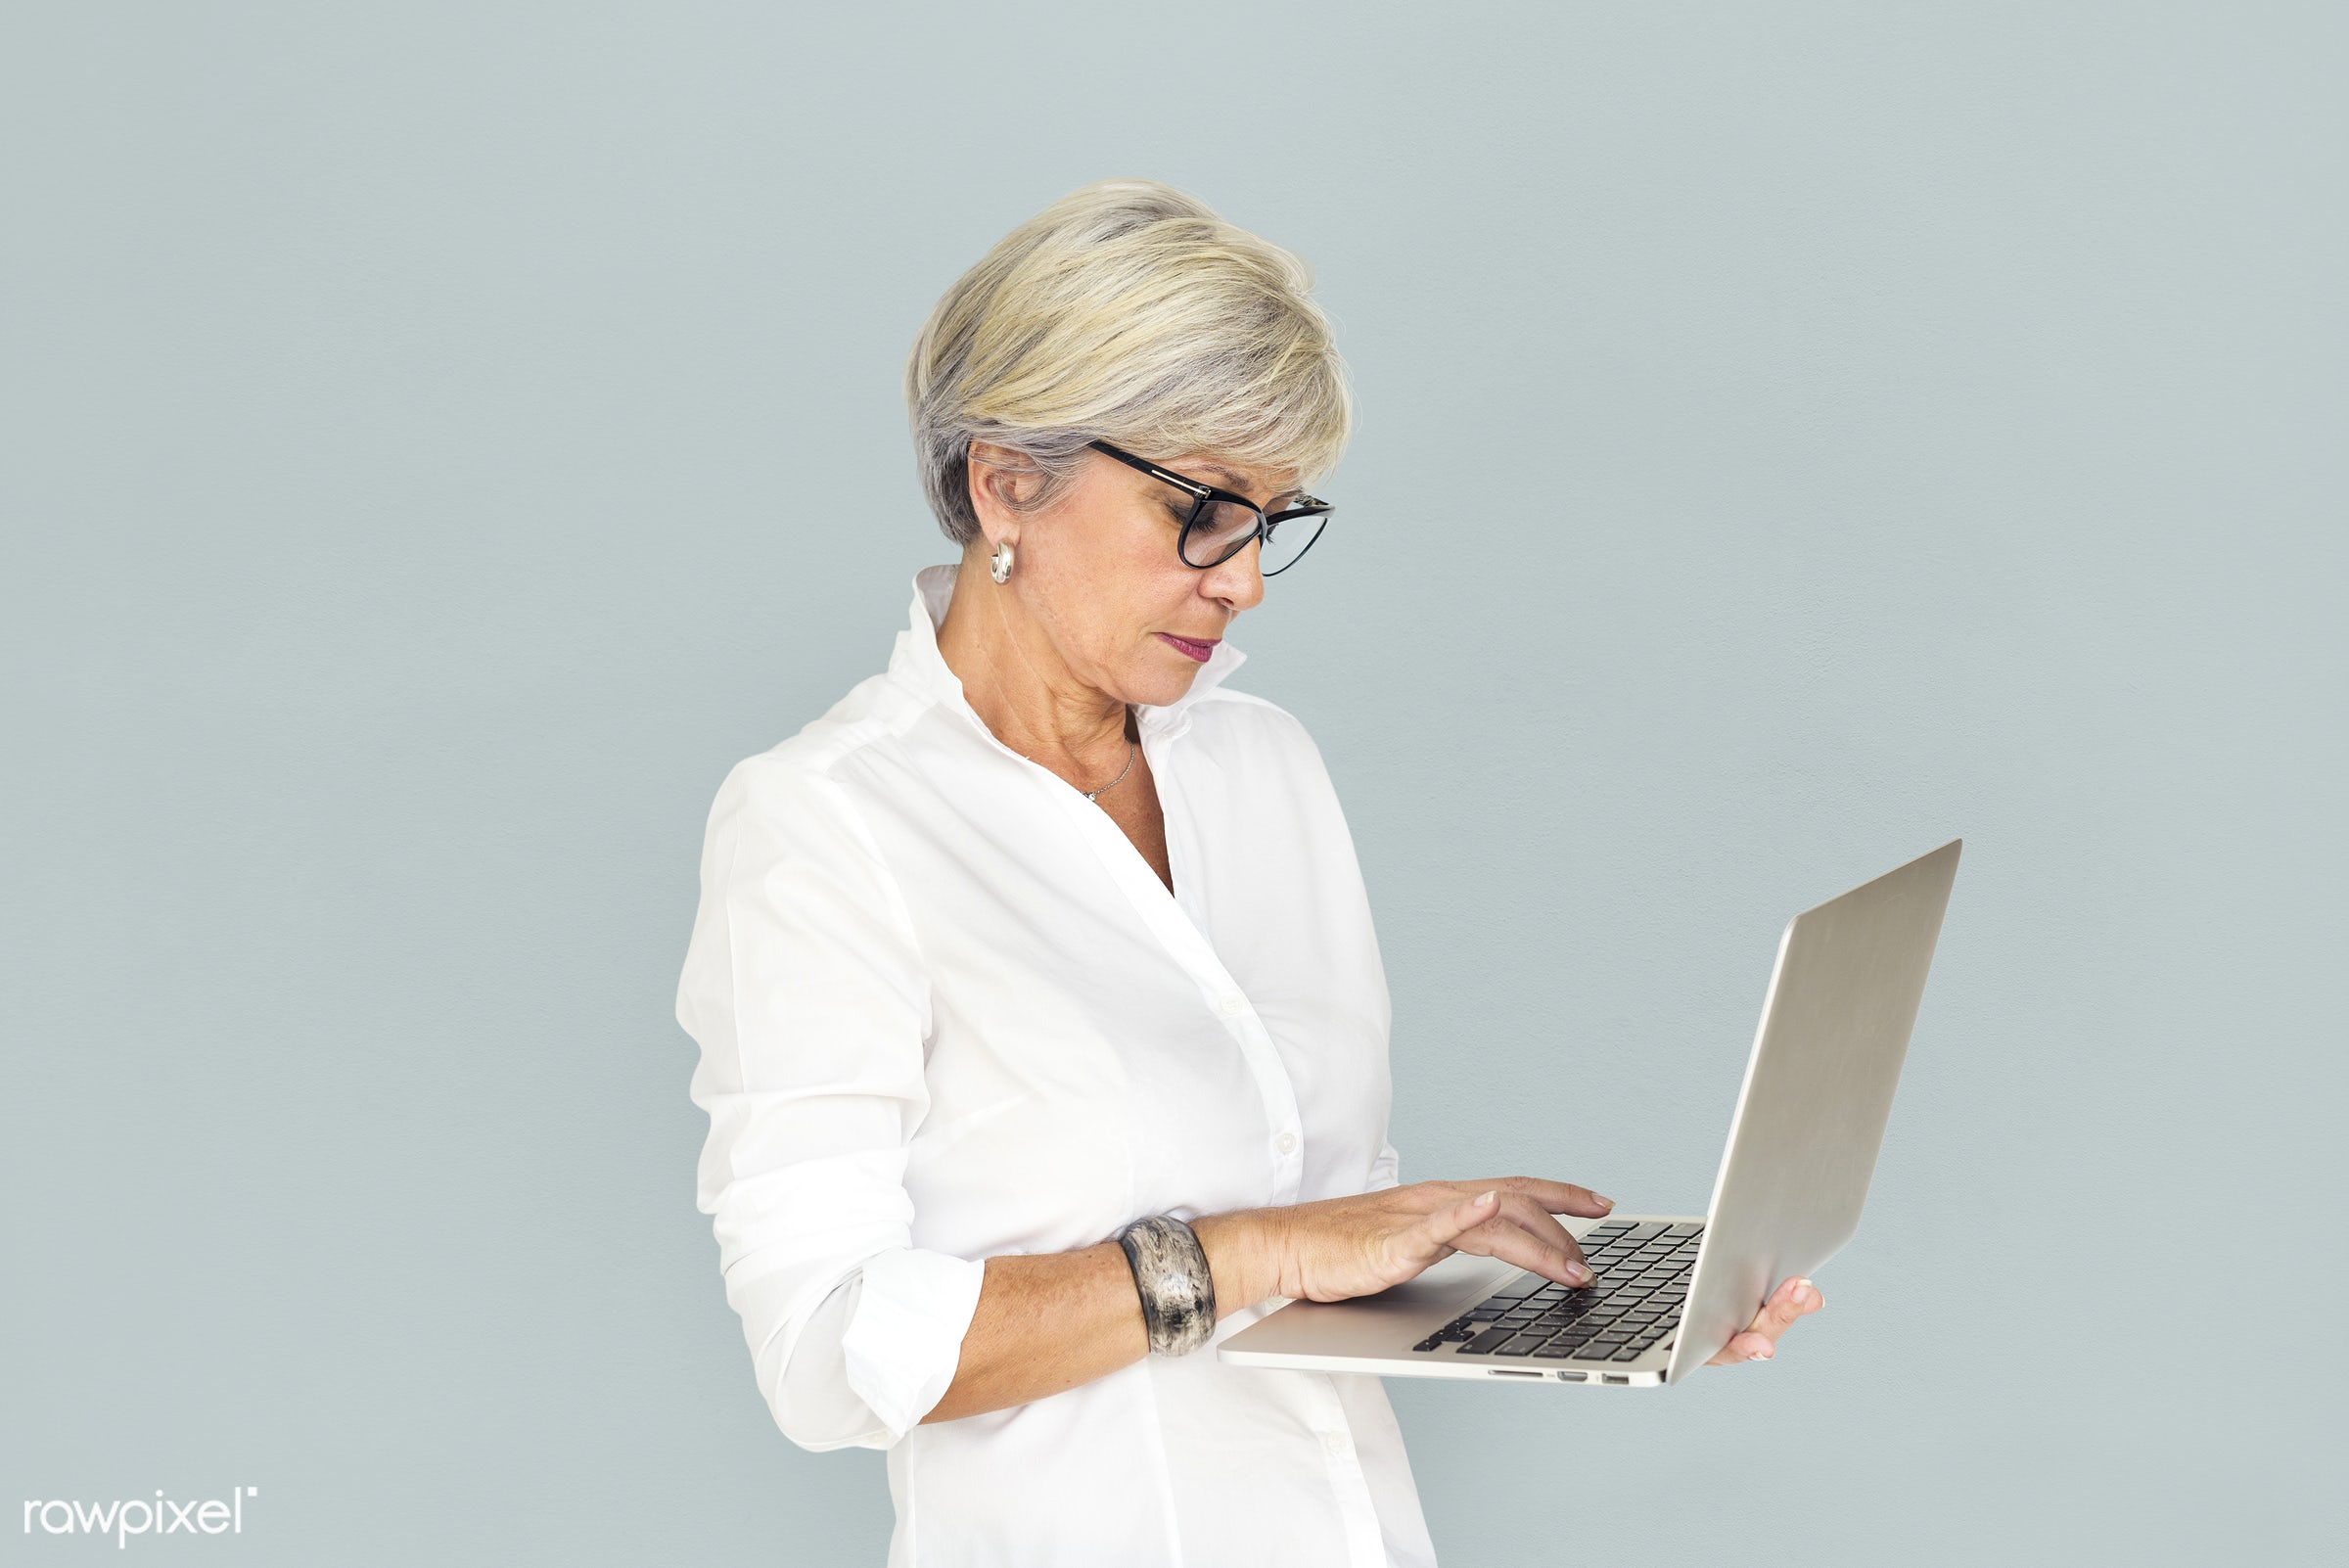 studio, expression, person, technology, business wear, sad, busy, frowning, people, business, caucasian, girl, woman, laptop...